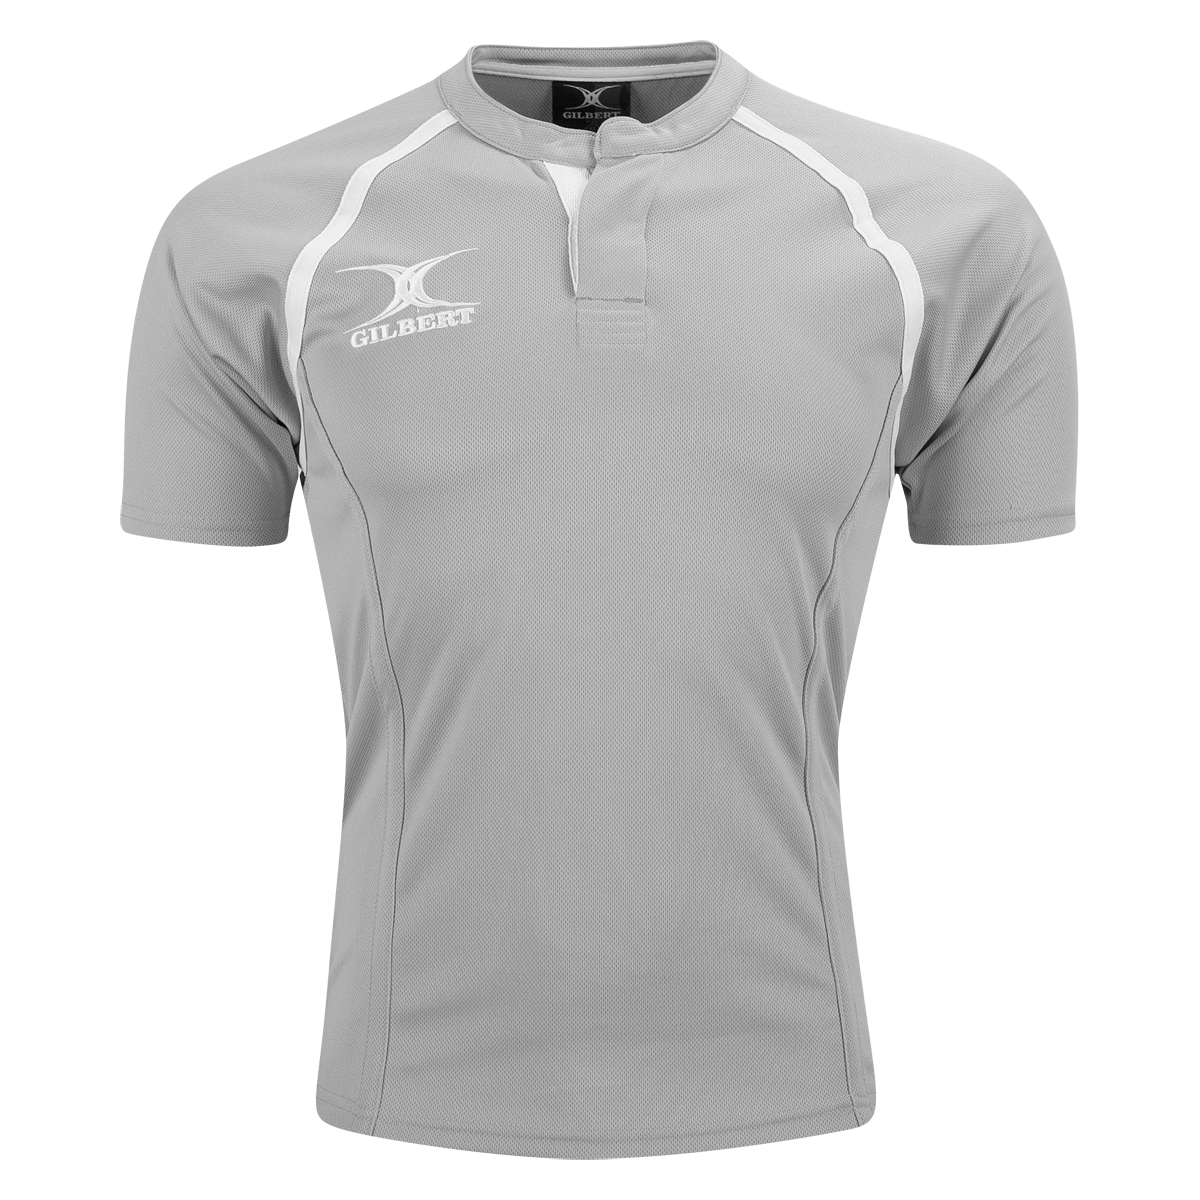 Gilbert Grey Xact Premier Rugby Jersey With Logo on Right Chest